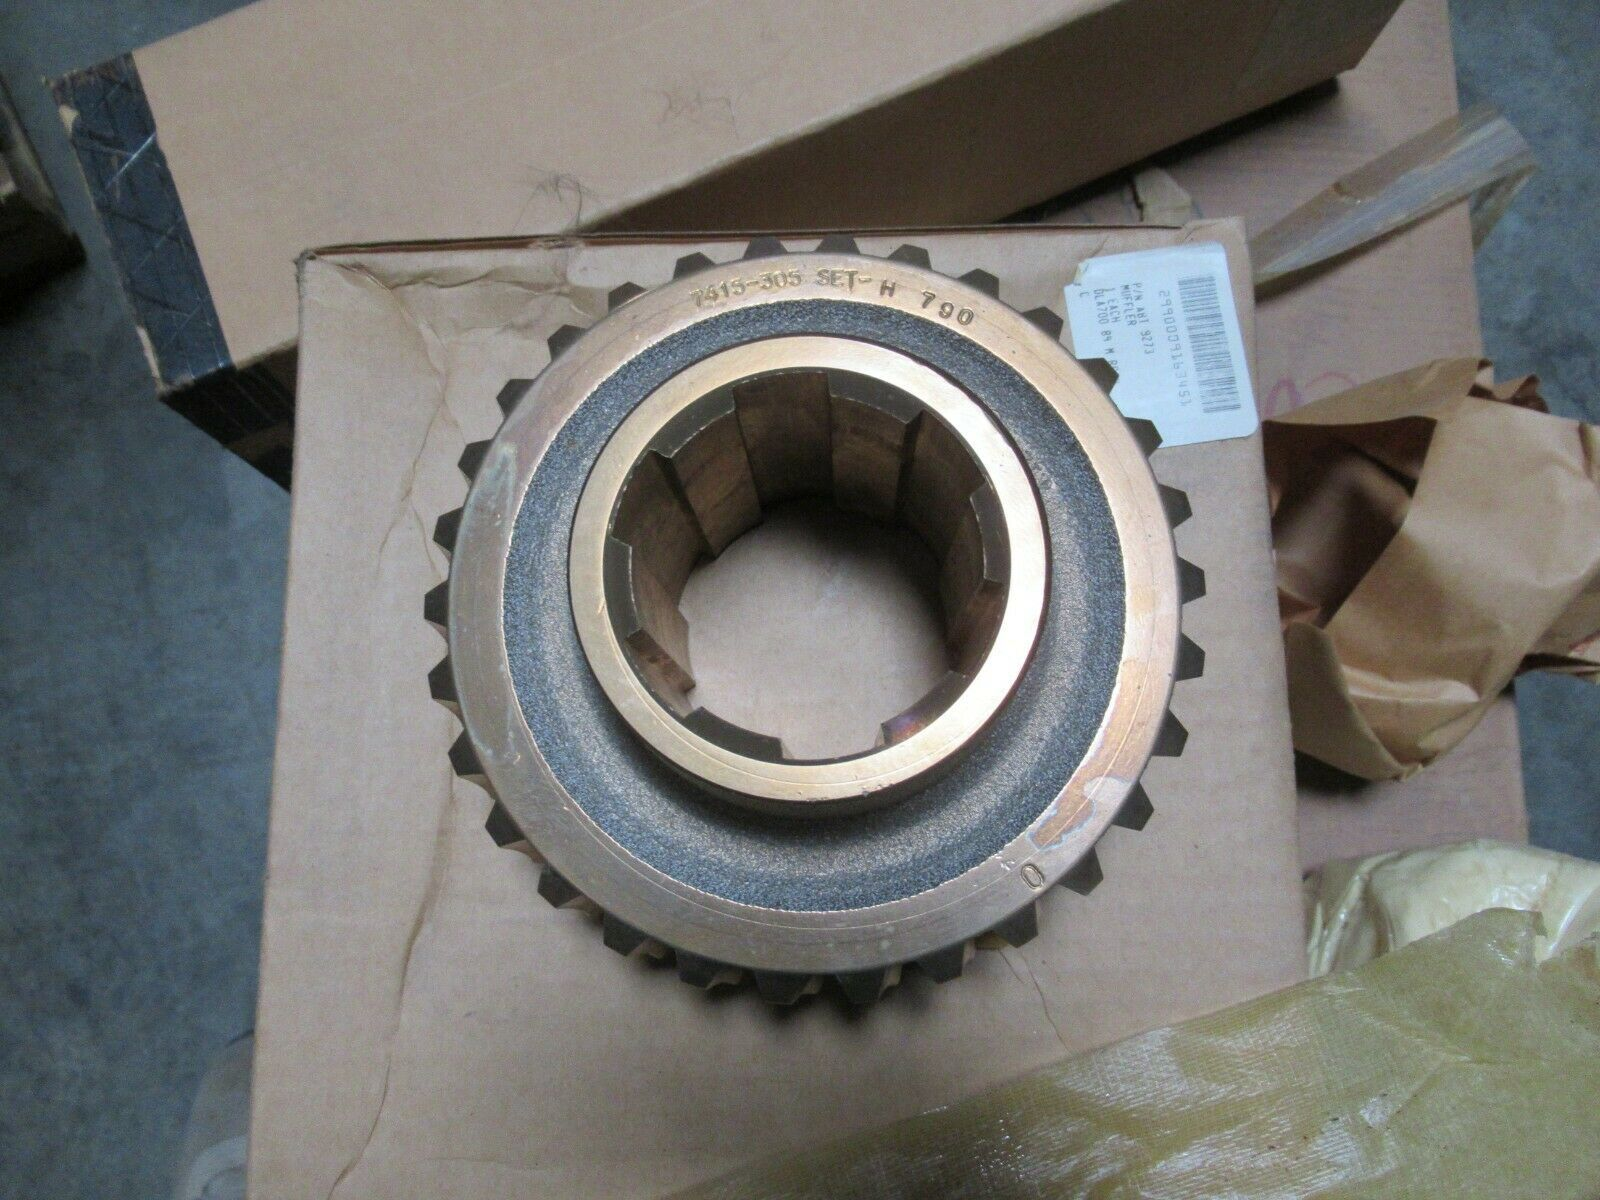 Cone Drive Operations 7415C-255/305 Worm and Worm Wheel Matched Gear Set